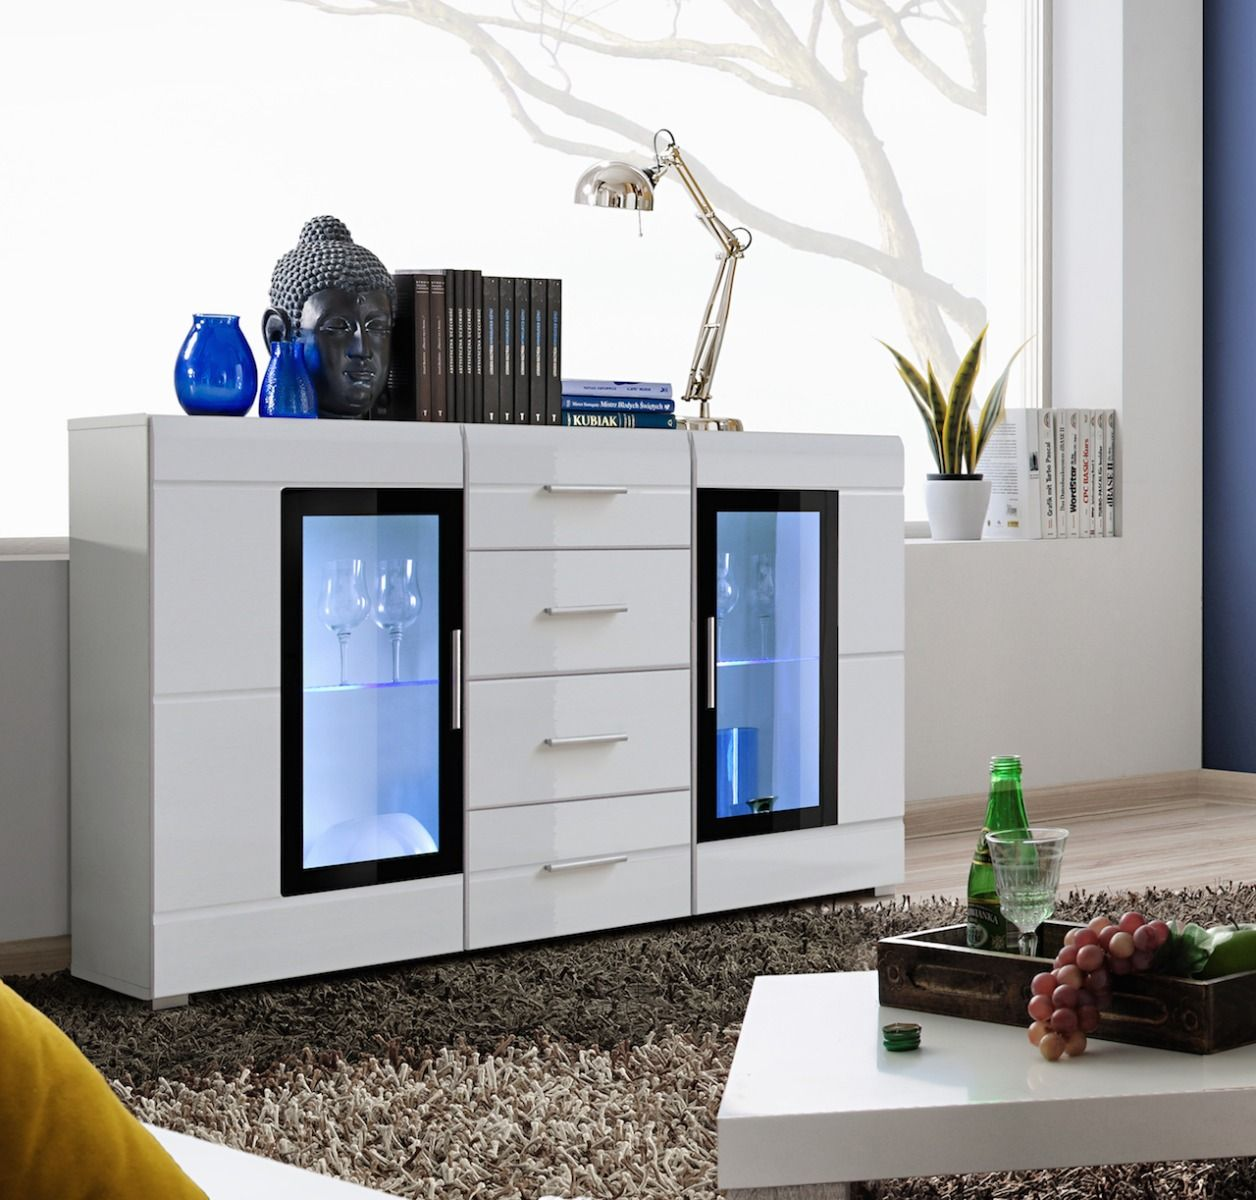 Commodes Design Commodes Commode Blanche Armoire Commodes Commode Pas Cher 3 Tiroirs Commode Commode Moderne Commode Design Meuble De Television